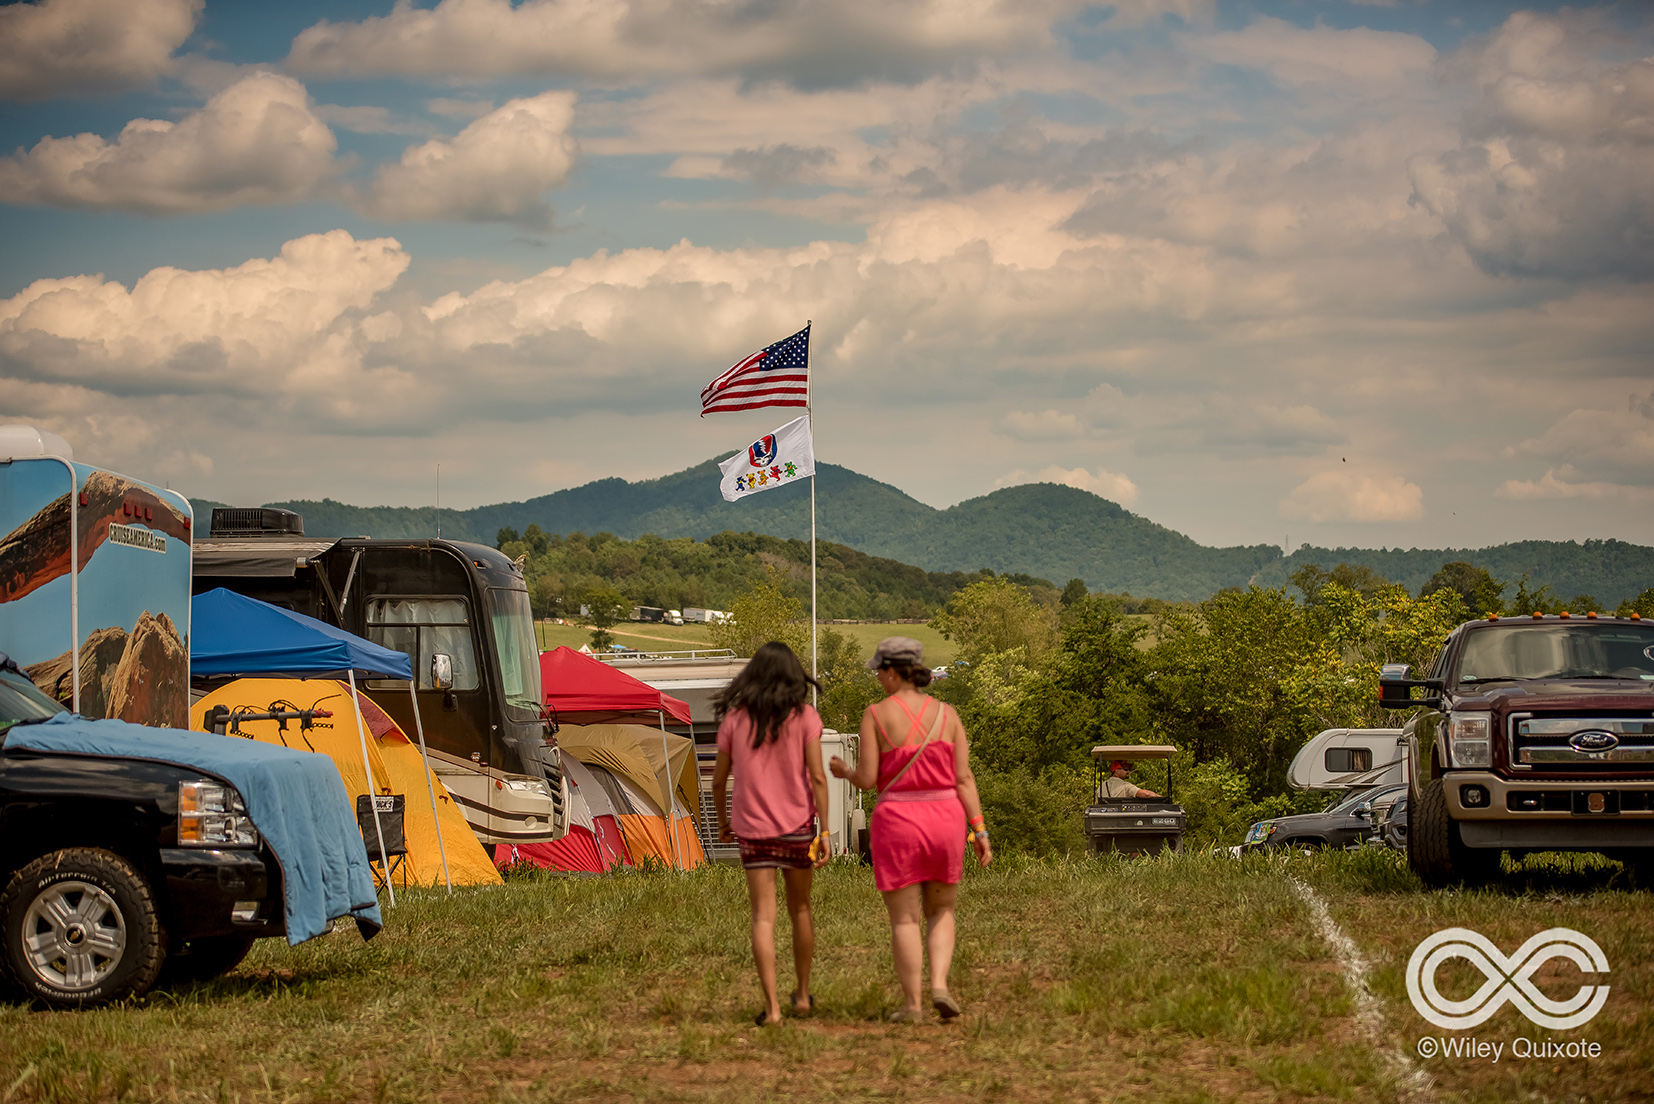 The Daytripper Experience at LOCKN'